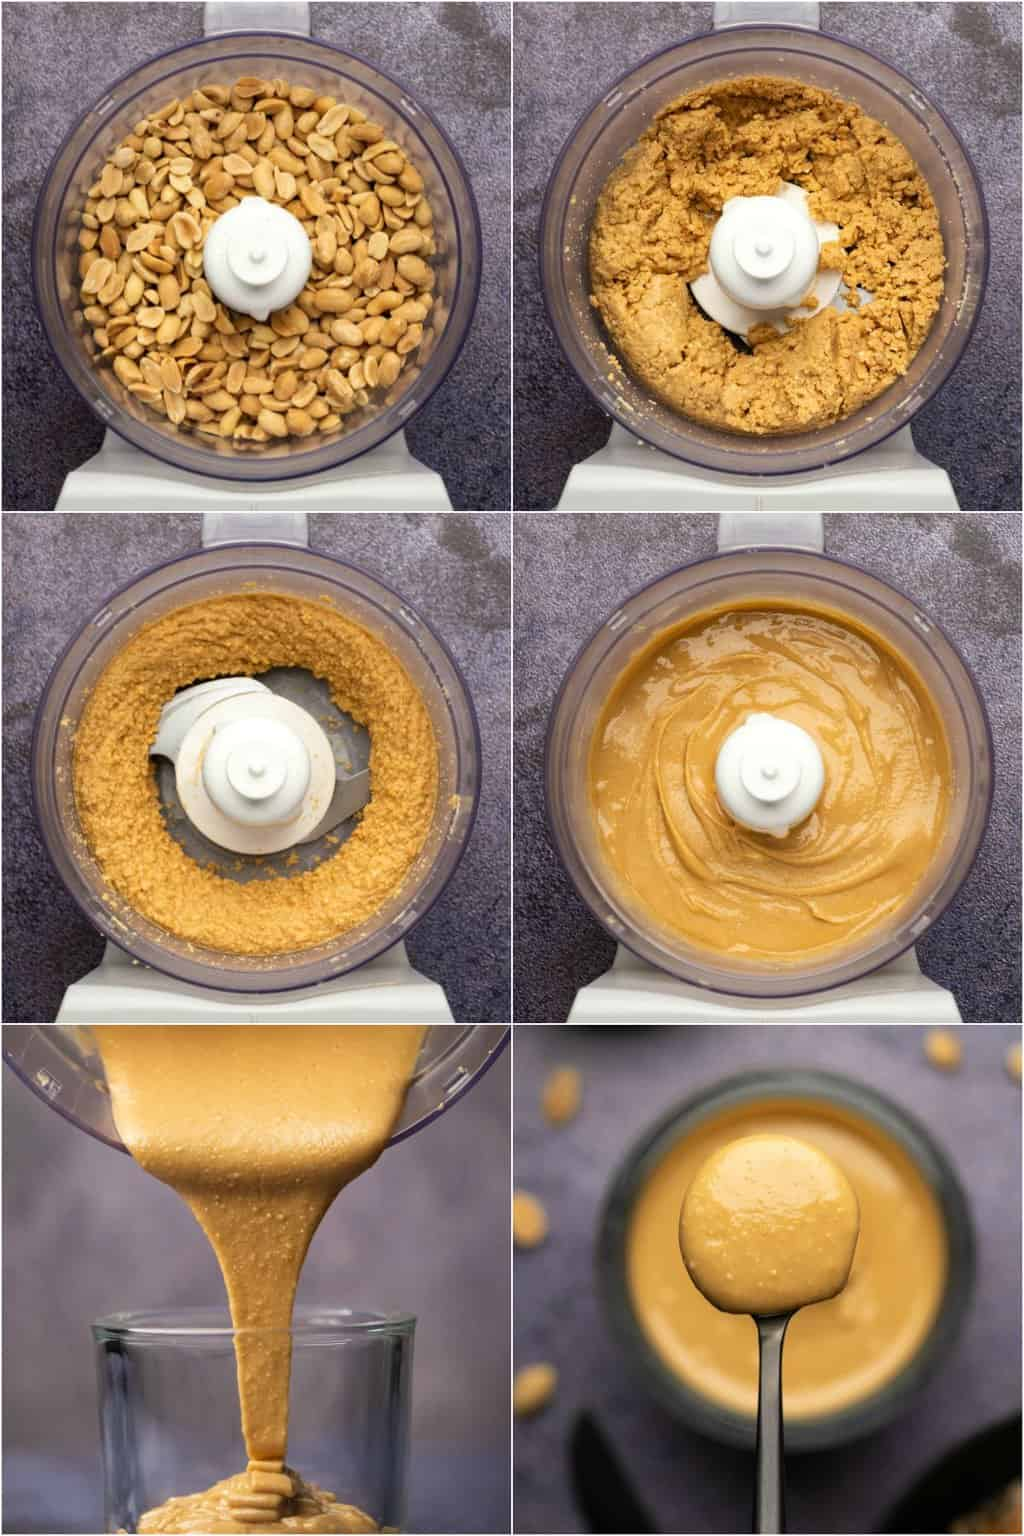 Step by step process photo collage of making homemade peanut butter.